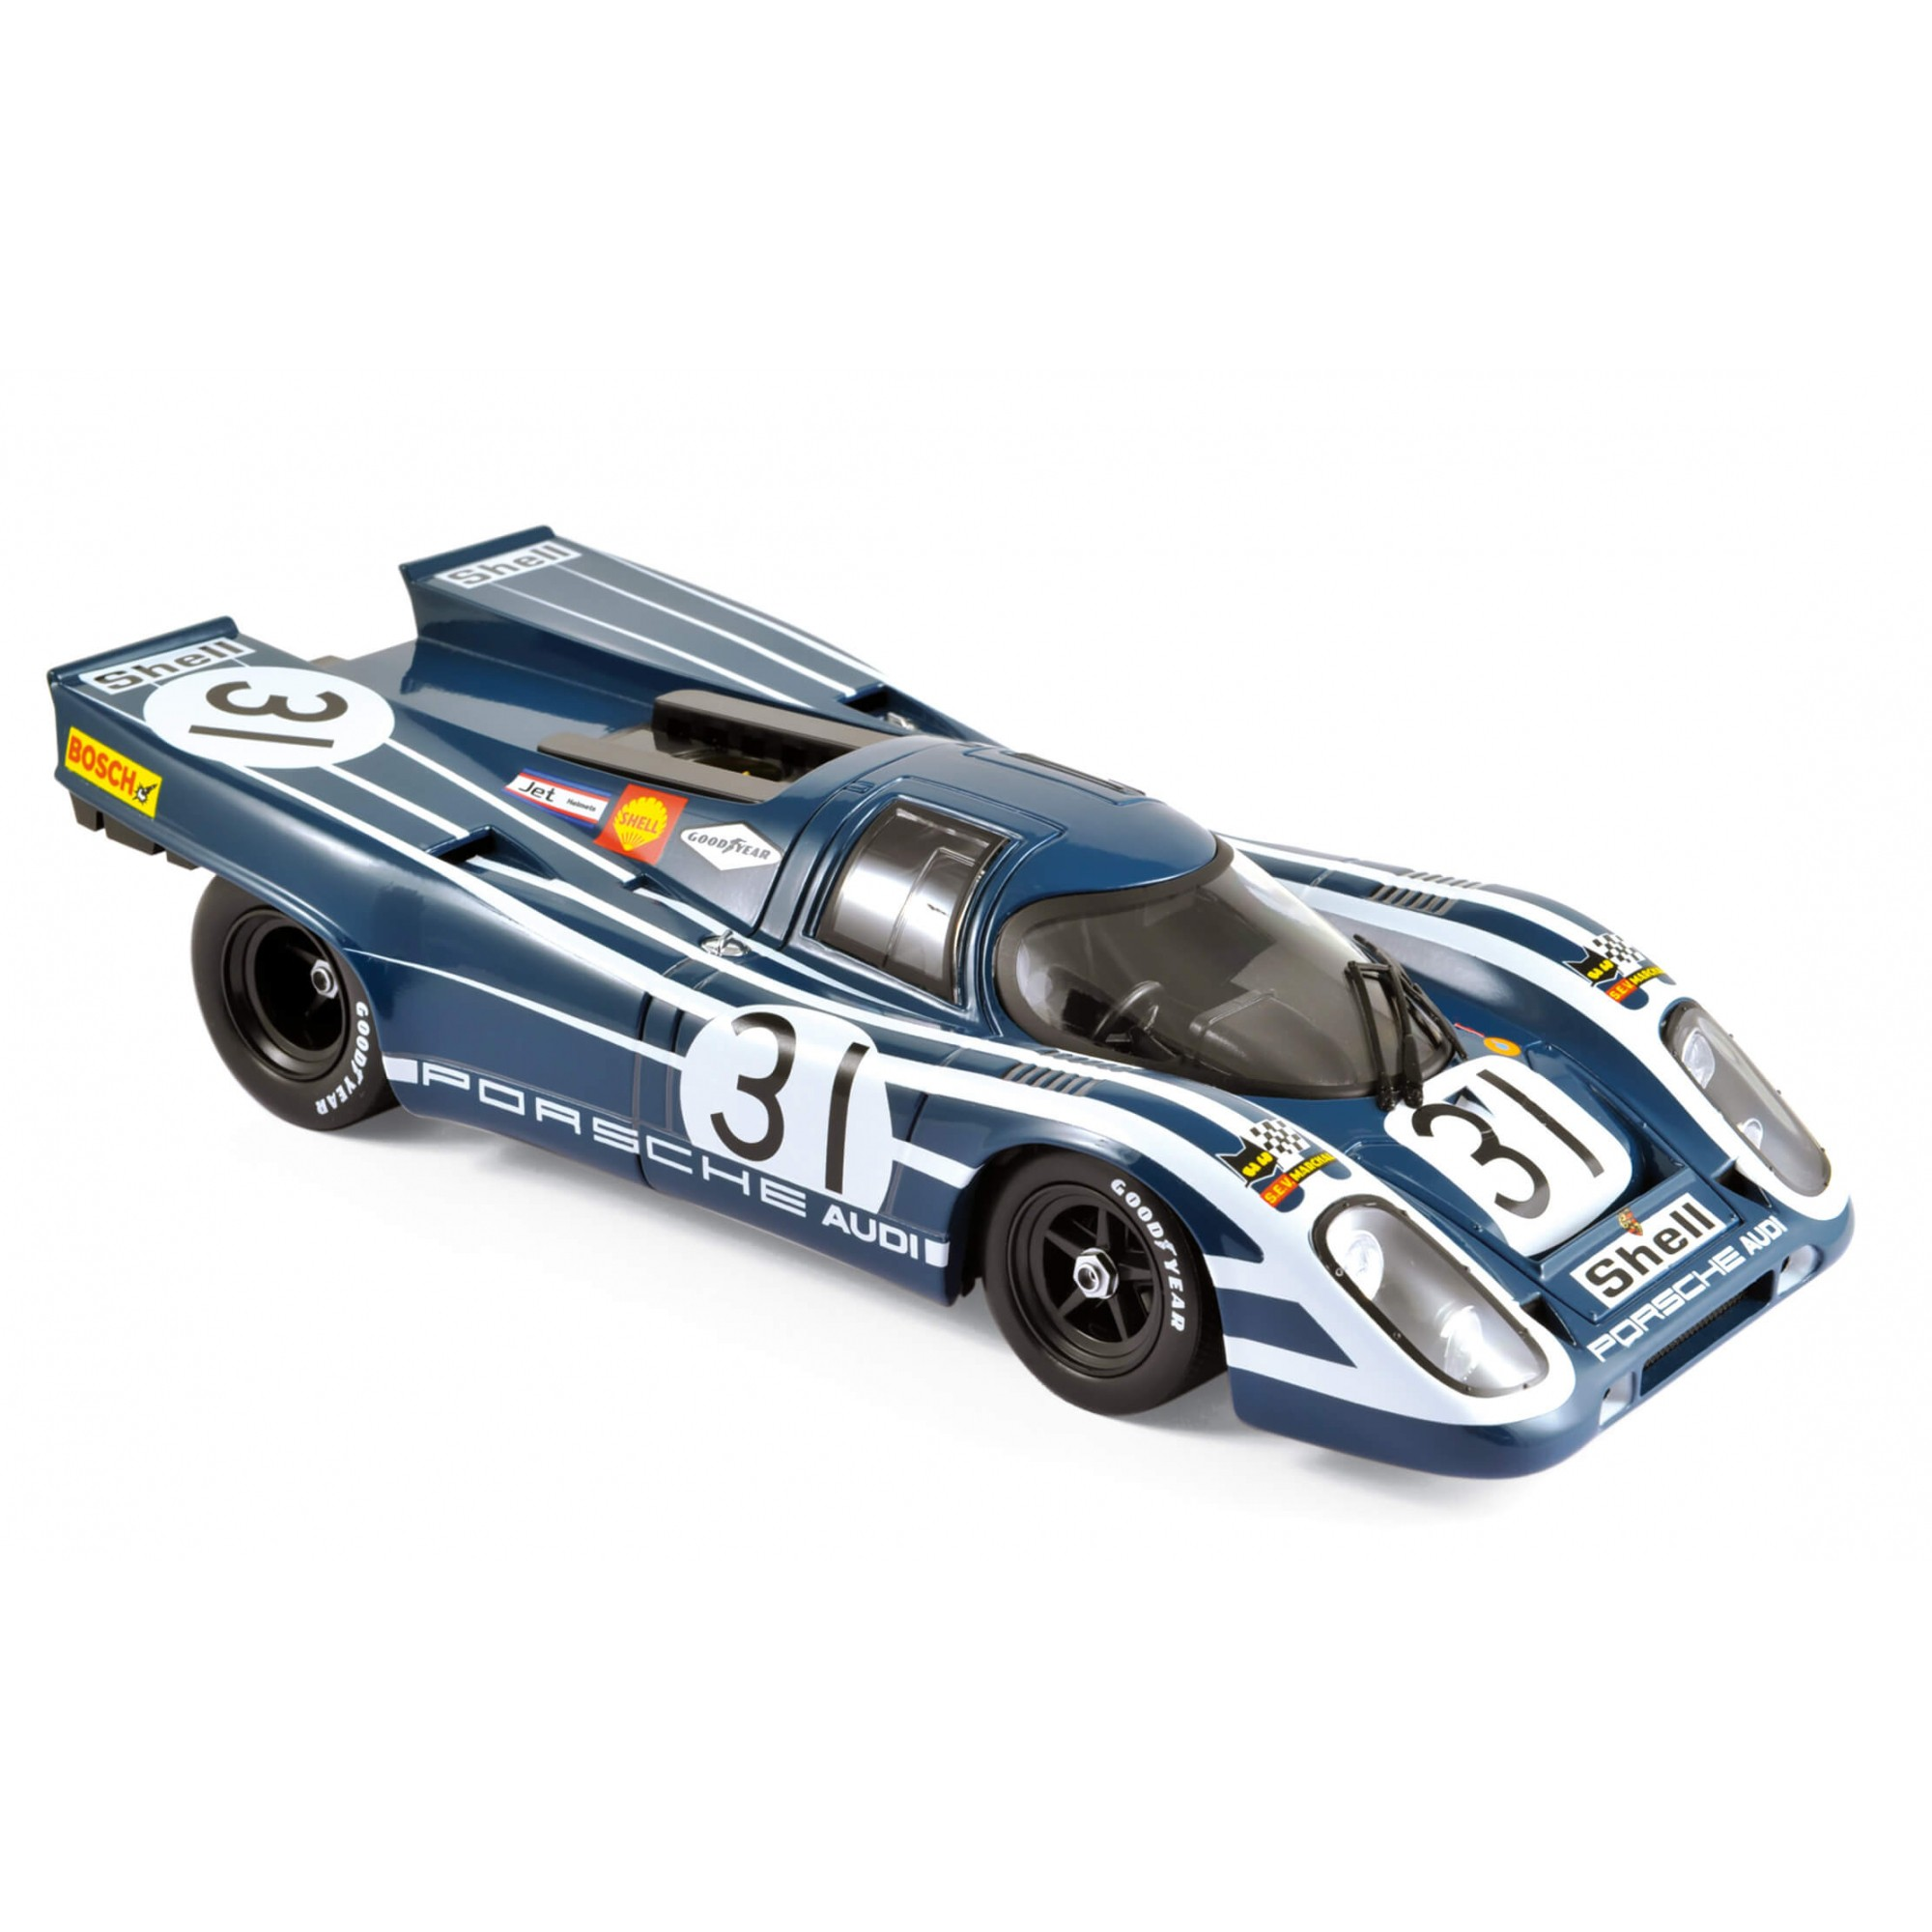 Miniatura Porsche 917K #31 - Whatkins Glen 6 Hours 1970 - 4Th Place 1/18 Norev